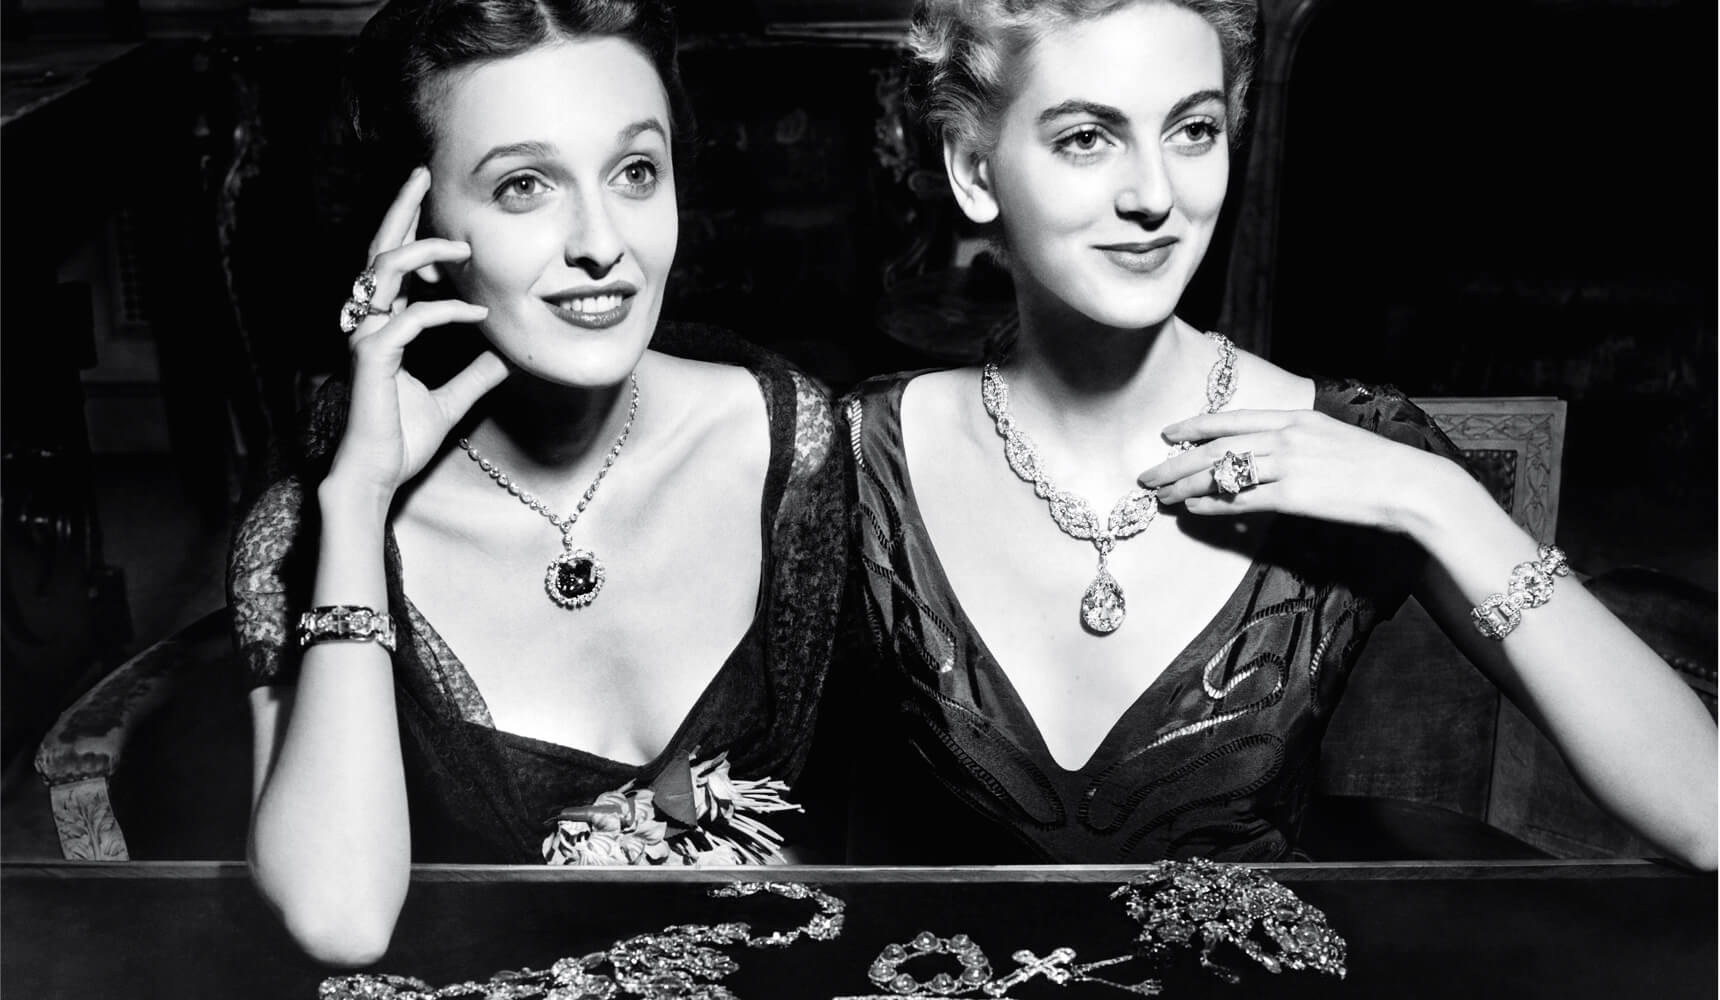 Vintage image of women wearing Harry Winston necklaces at the Harry Winston Court of Jewels